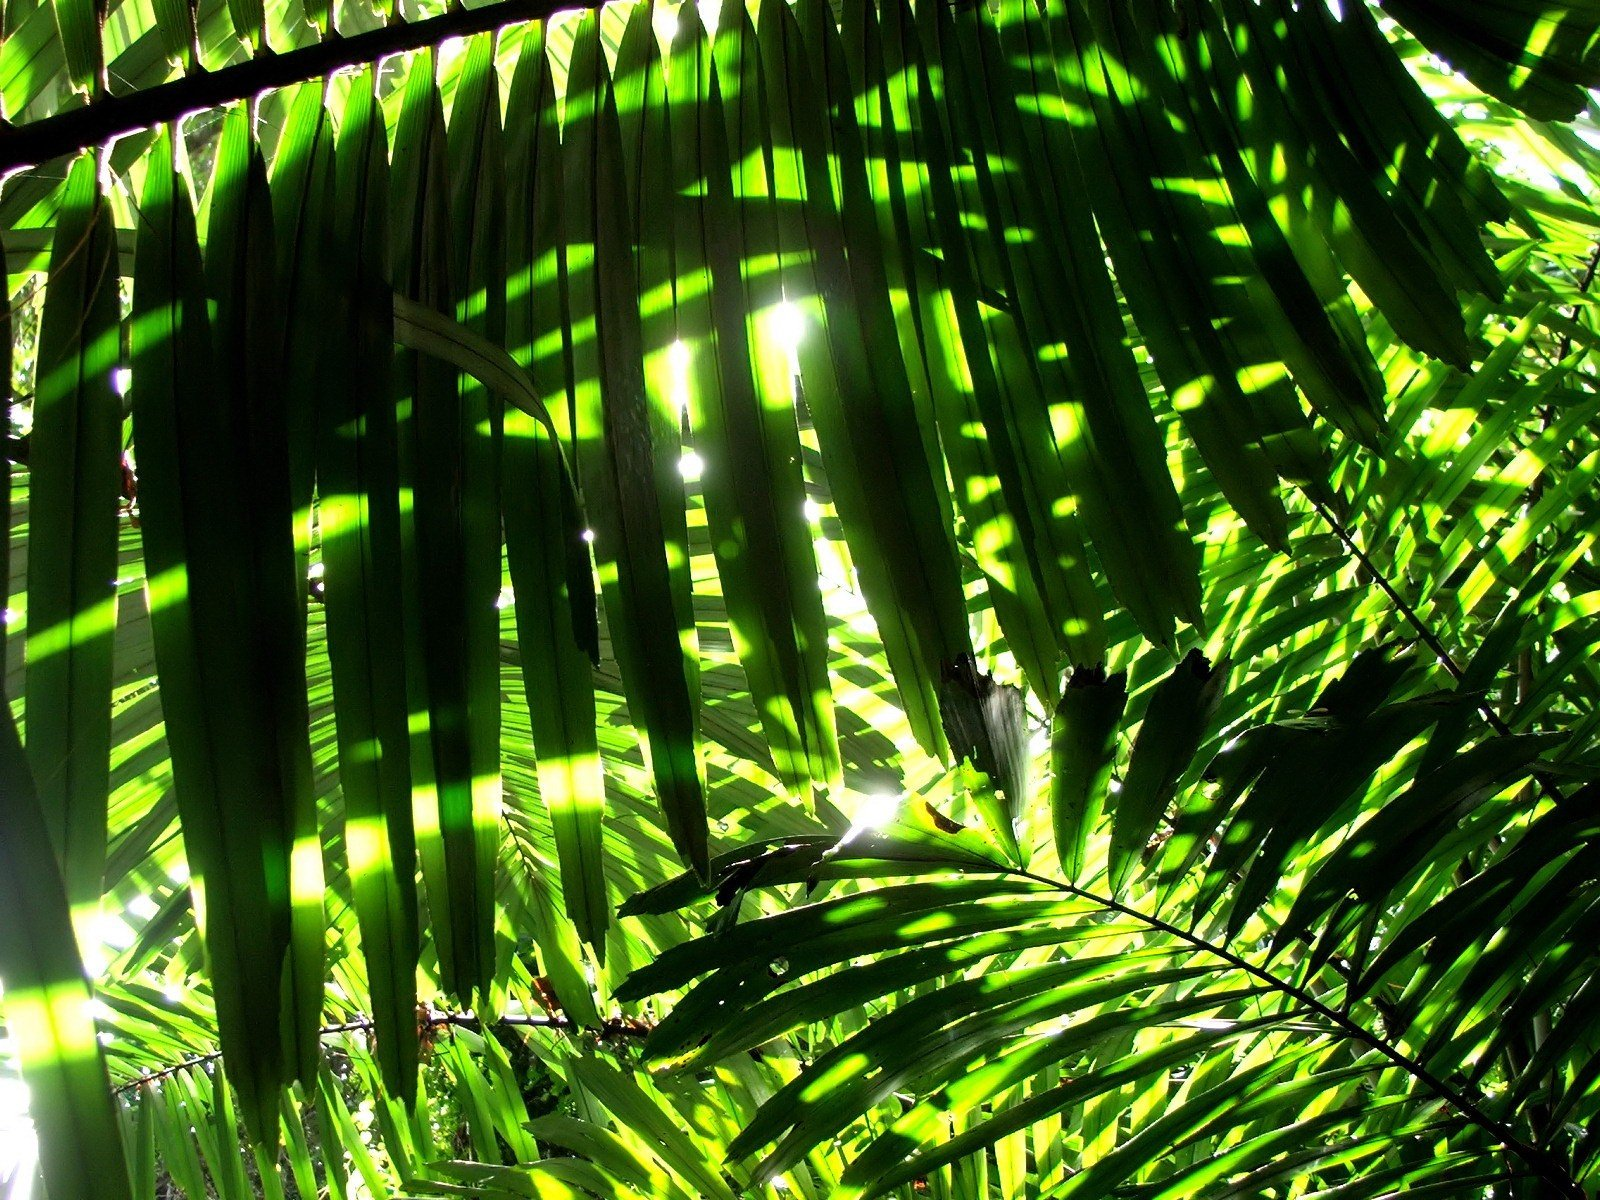 Nature leaves sunlight palm leaves wallpaper 1600x1200 284972 1600x1200